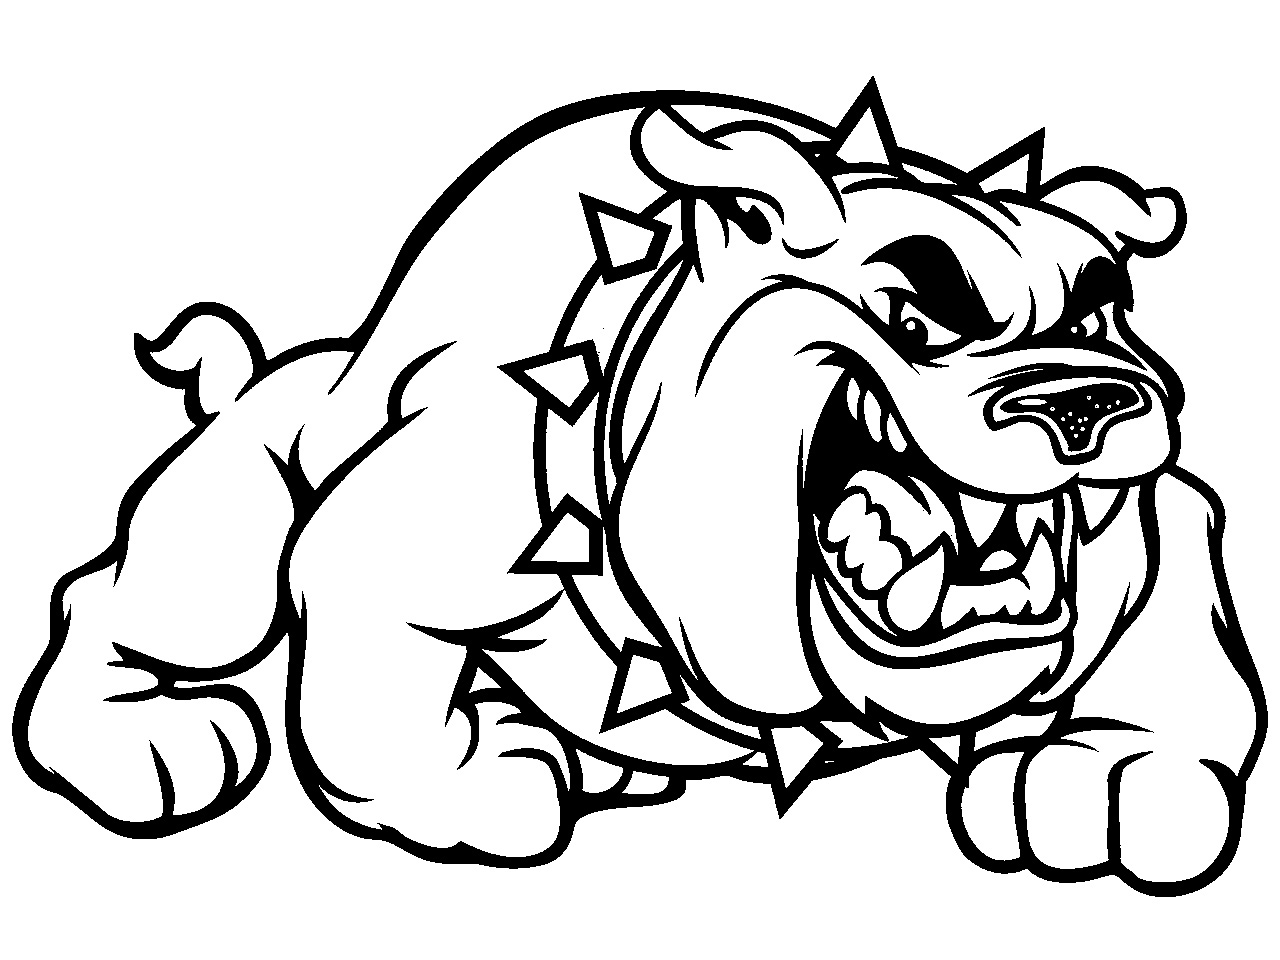 Drawn bulldog mean dog Bulldogs School clipart Pictures for